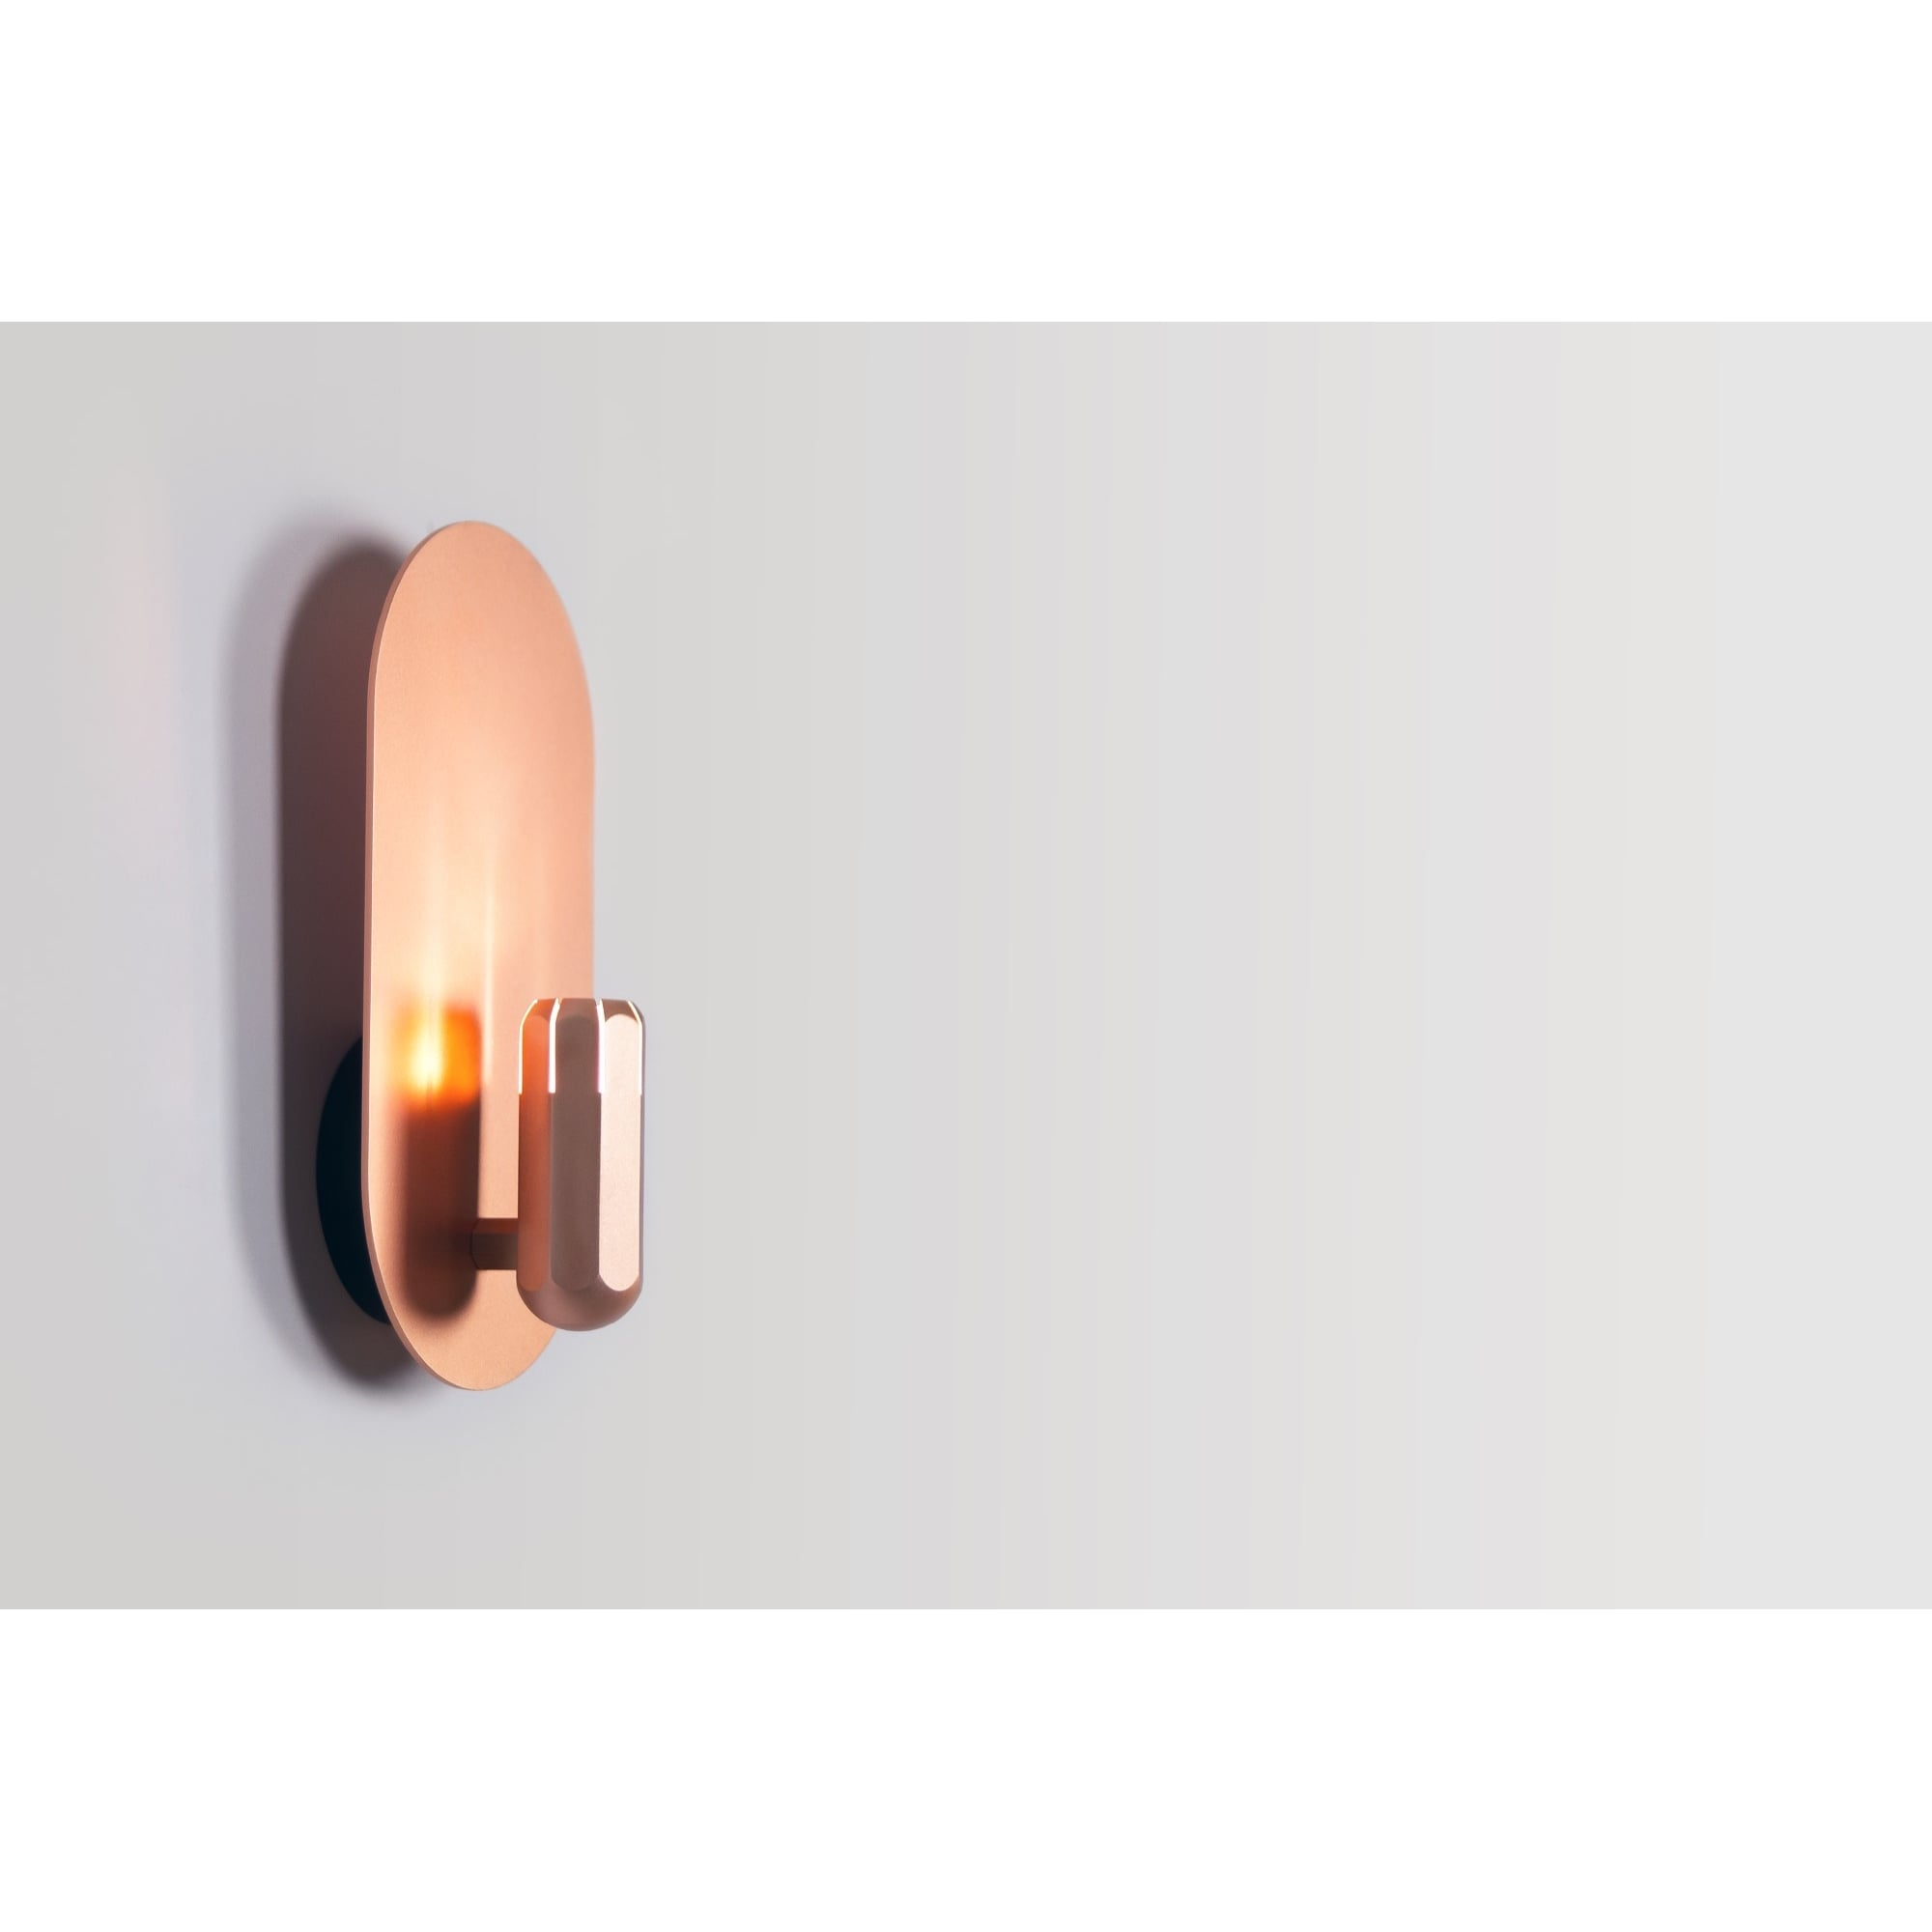 BRIXTON WALL modern LED wall light in copper